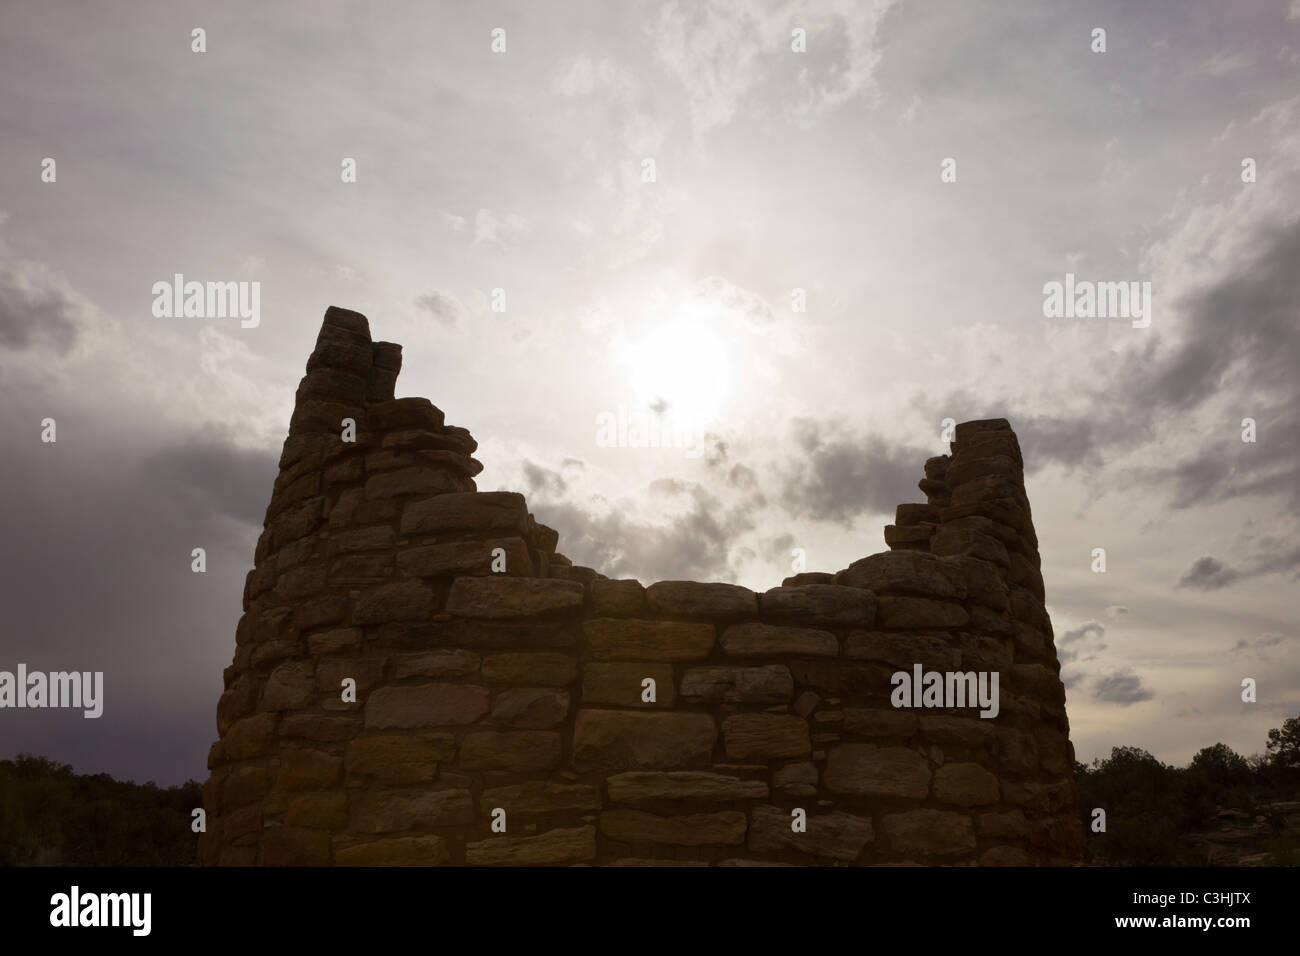 Tower silhouette at the Cutthroat Castle Group in Hovenweep National Monument in southern Utah, USA. Stock Photo